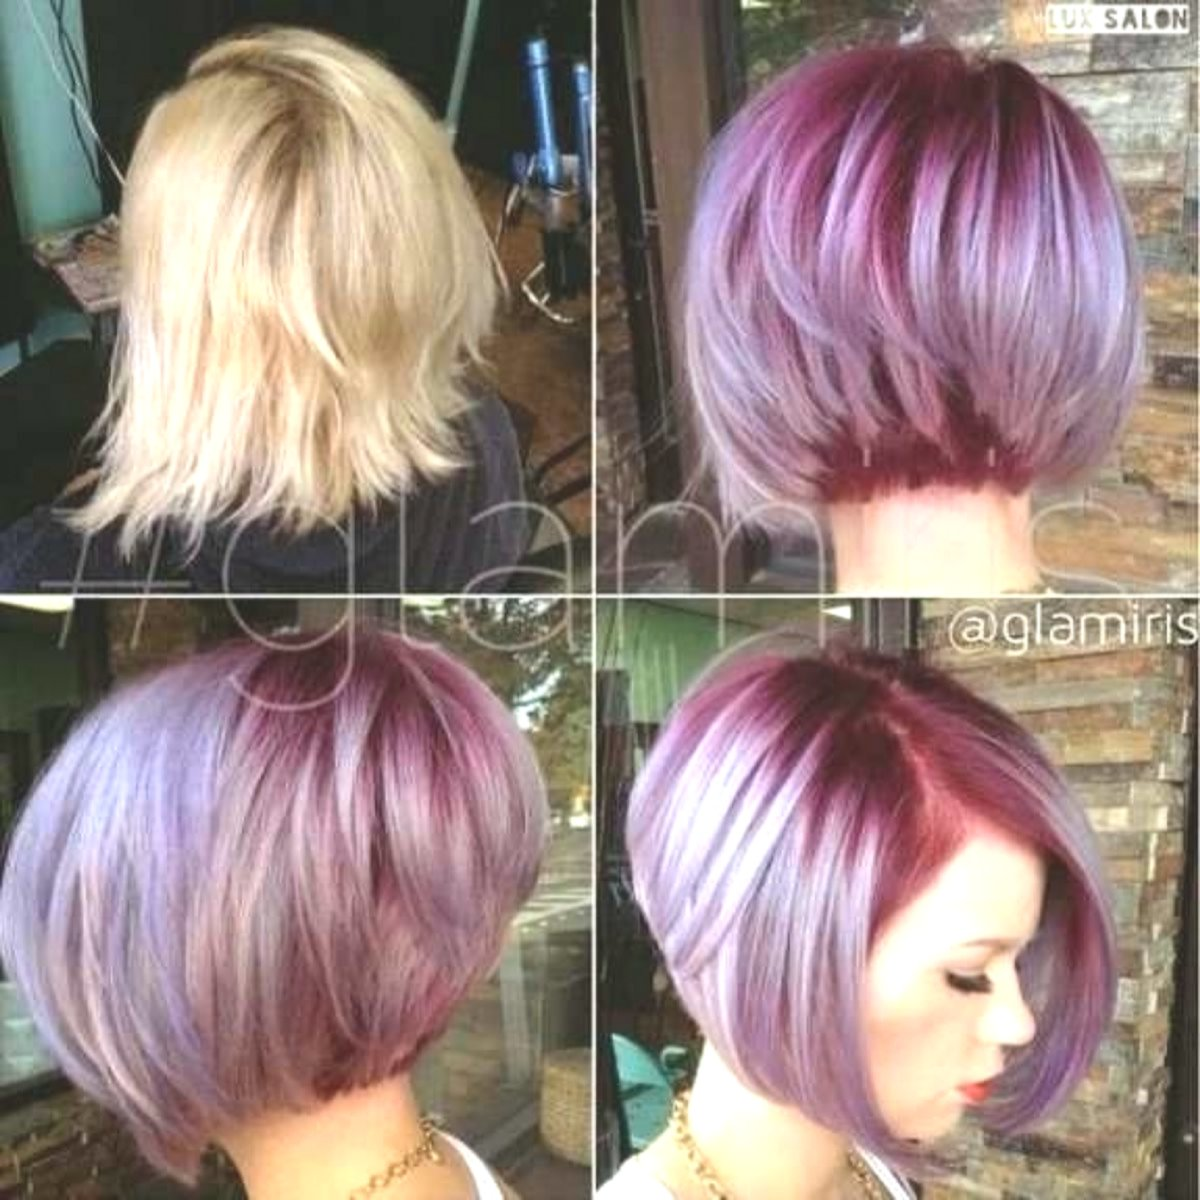 Fantastic Bob Hair Picture Fantastic Bob Hair Collection